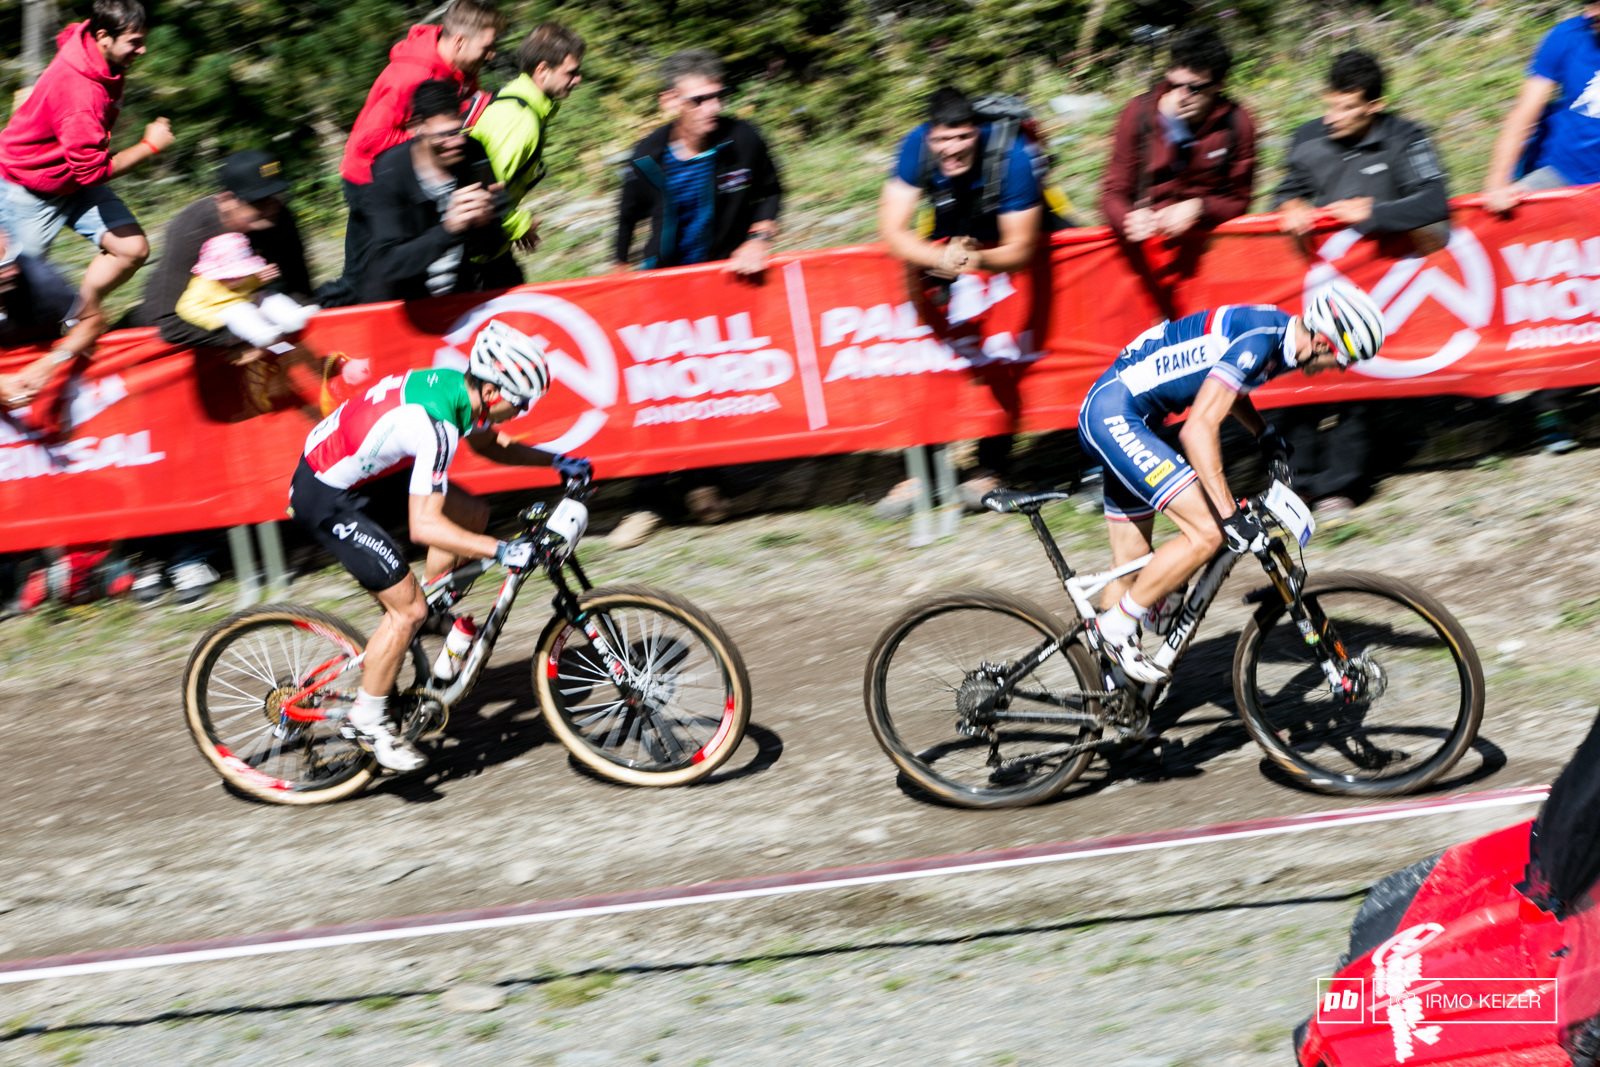 Once again Absalon and Schurter battled for top honours.